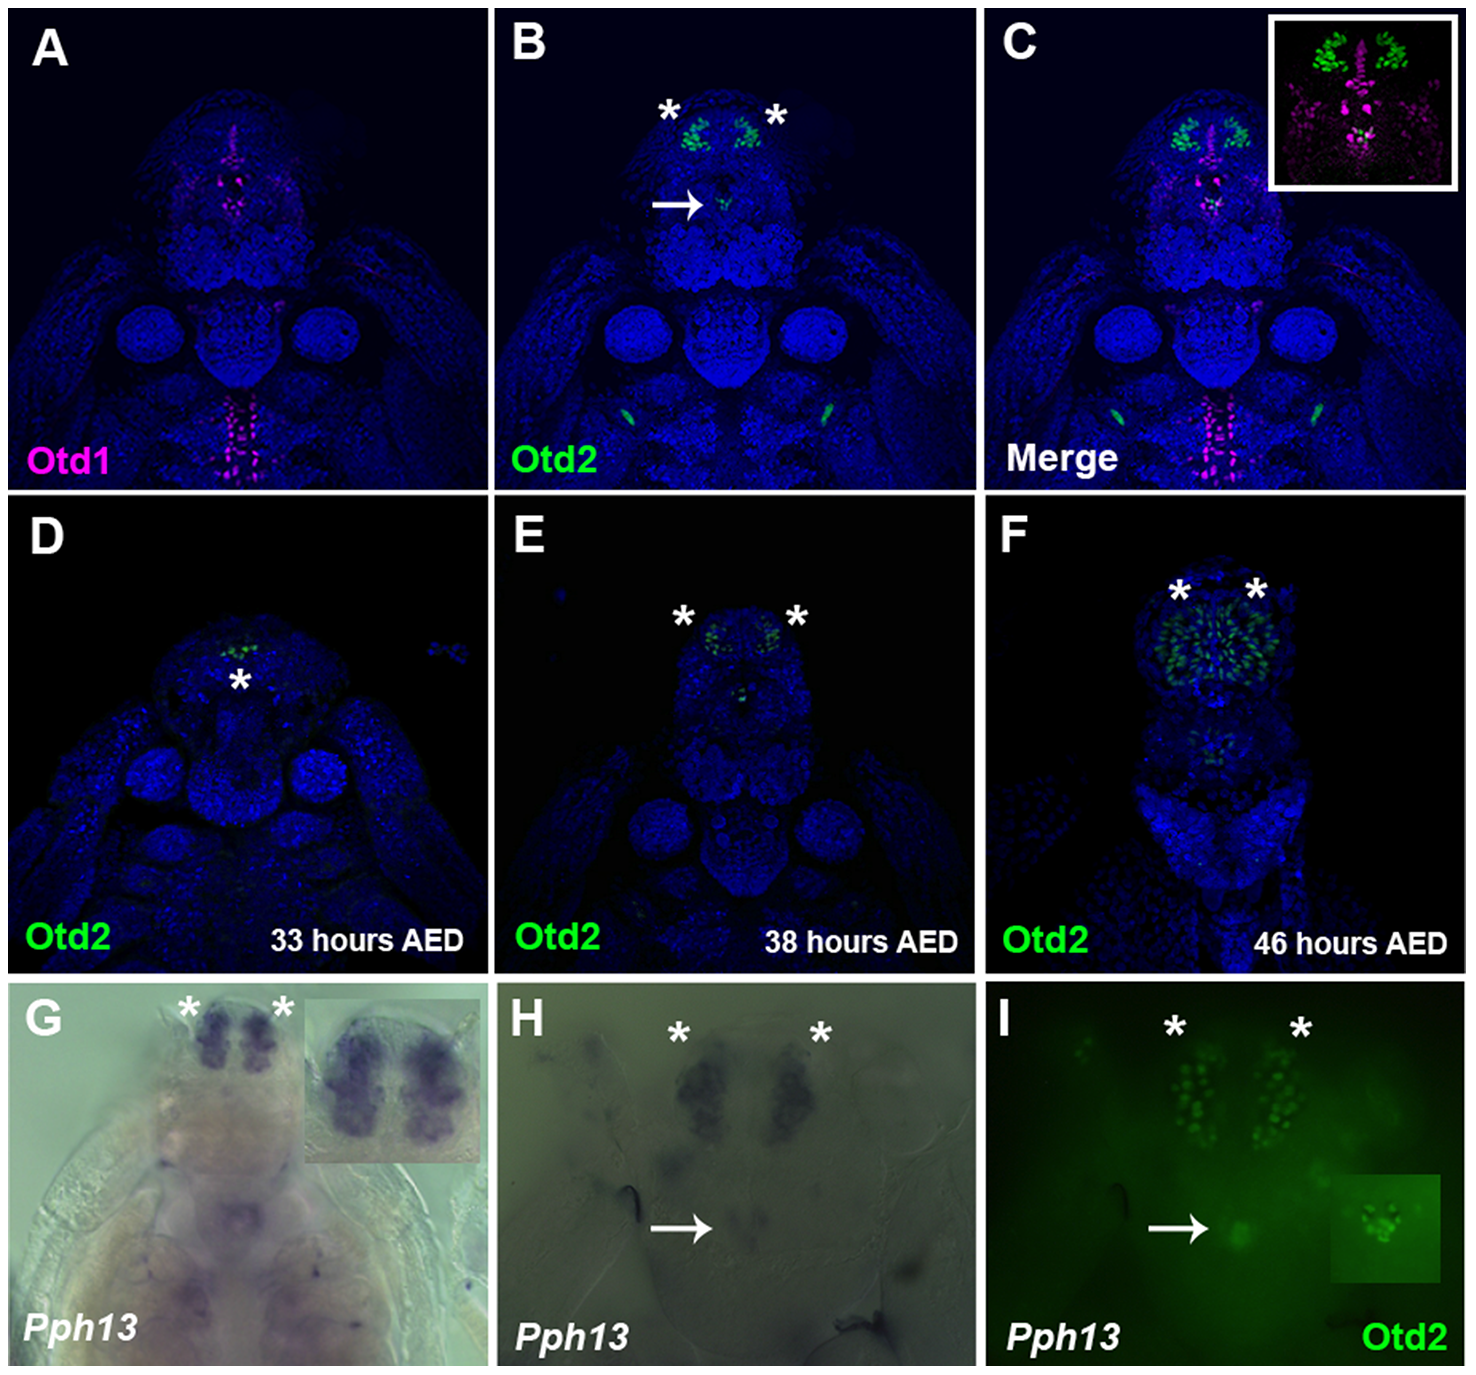 Spatial expression patterns of <i>Daphnia magna</i> Otd1, Otd2 and <i>Pph13</i> during <i>Daphnia</i> eye development.